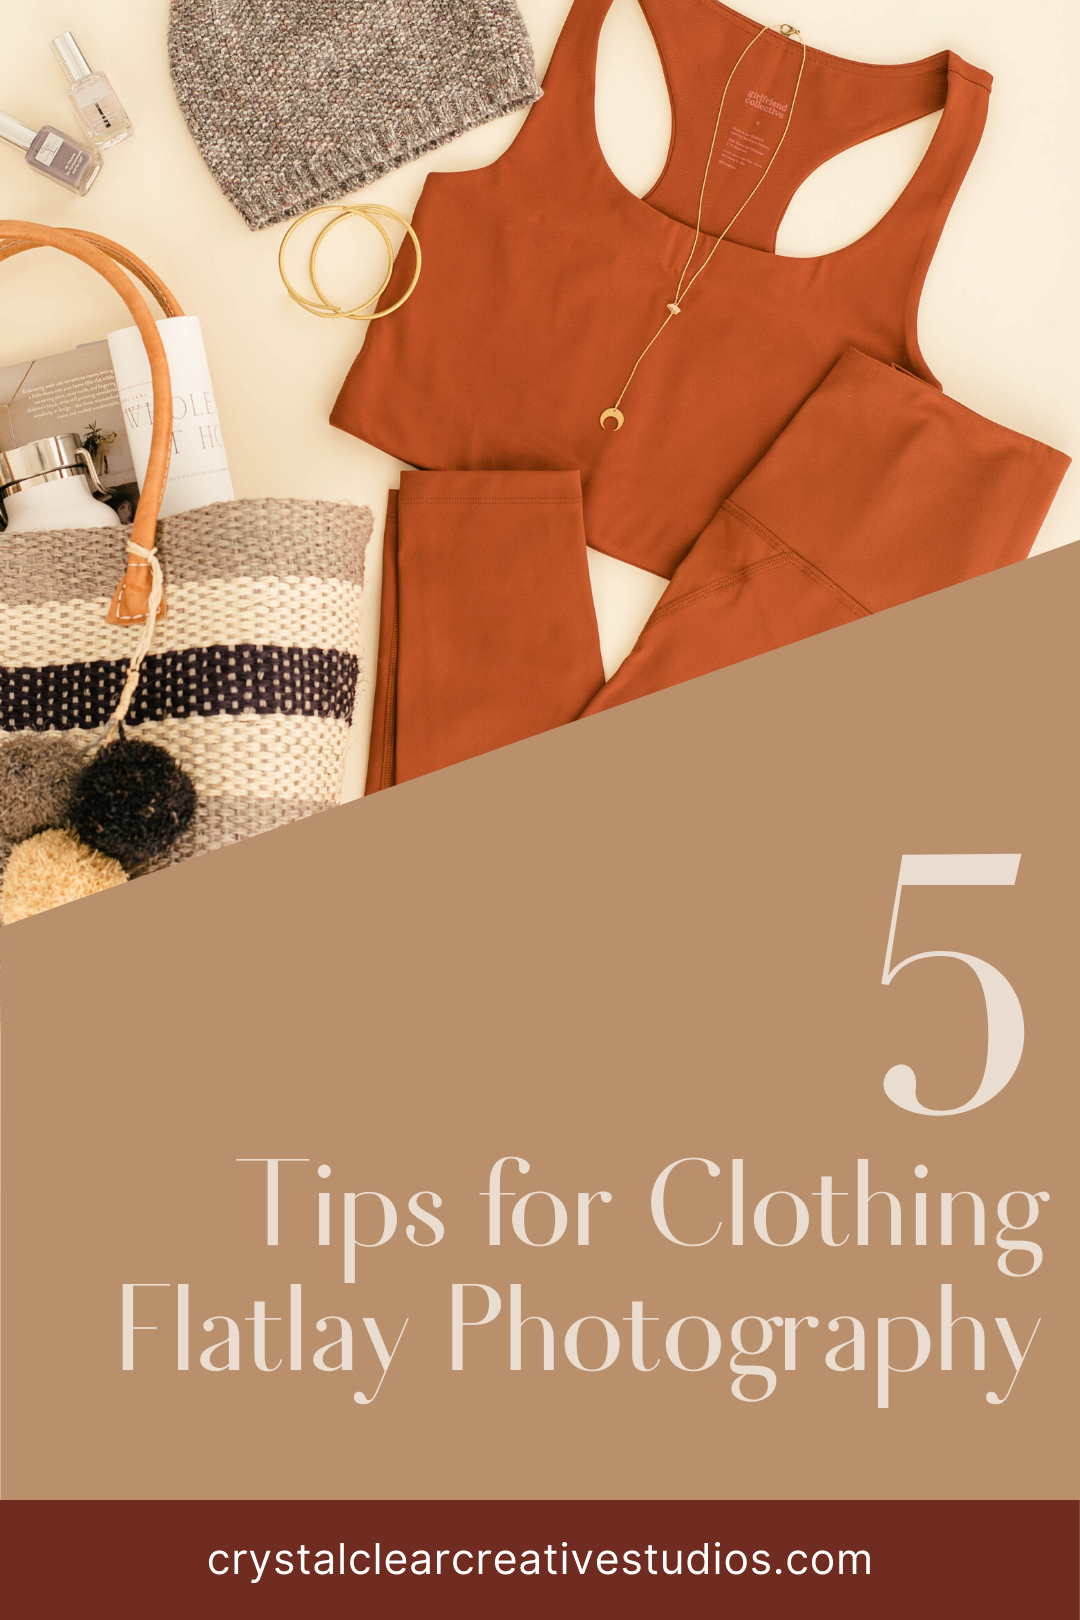 01-30-20 Top 5 Tips for Clothing Flatlay Photography